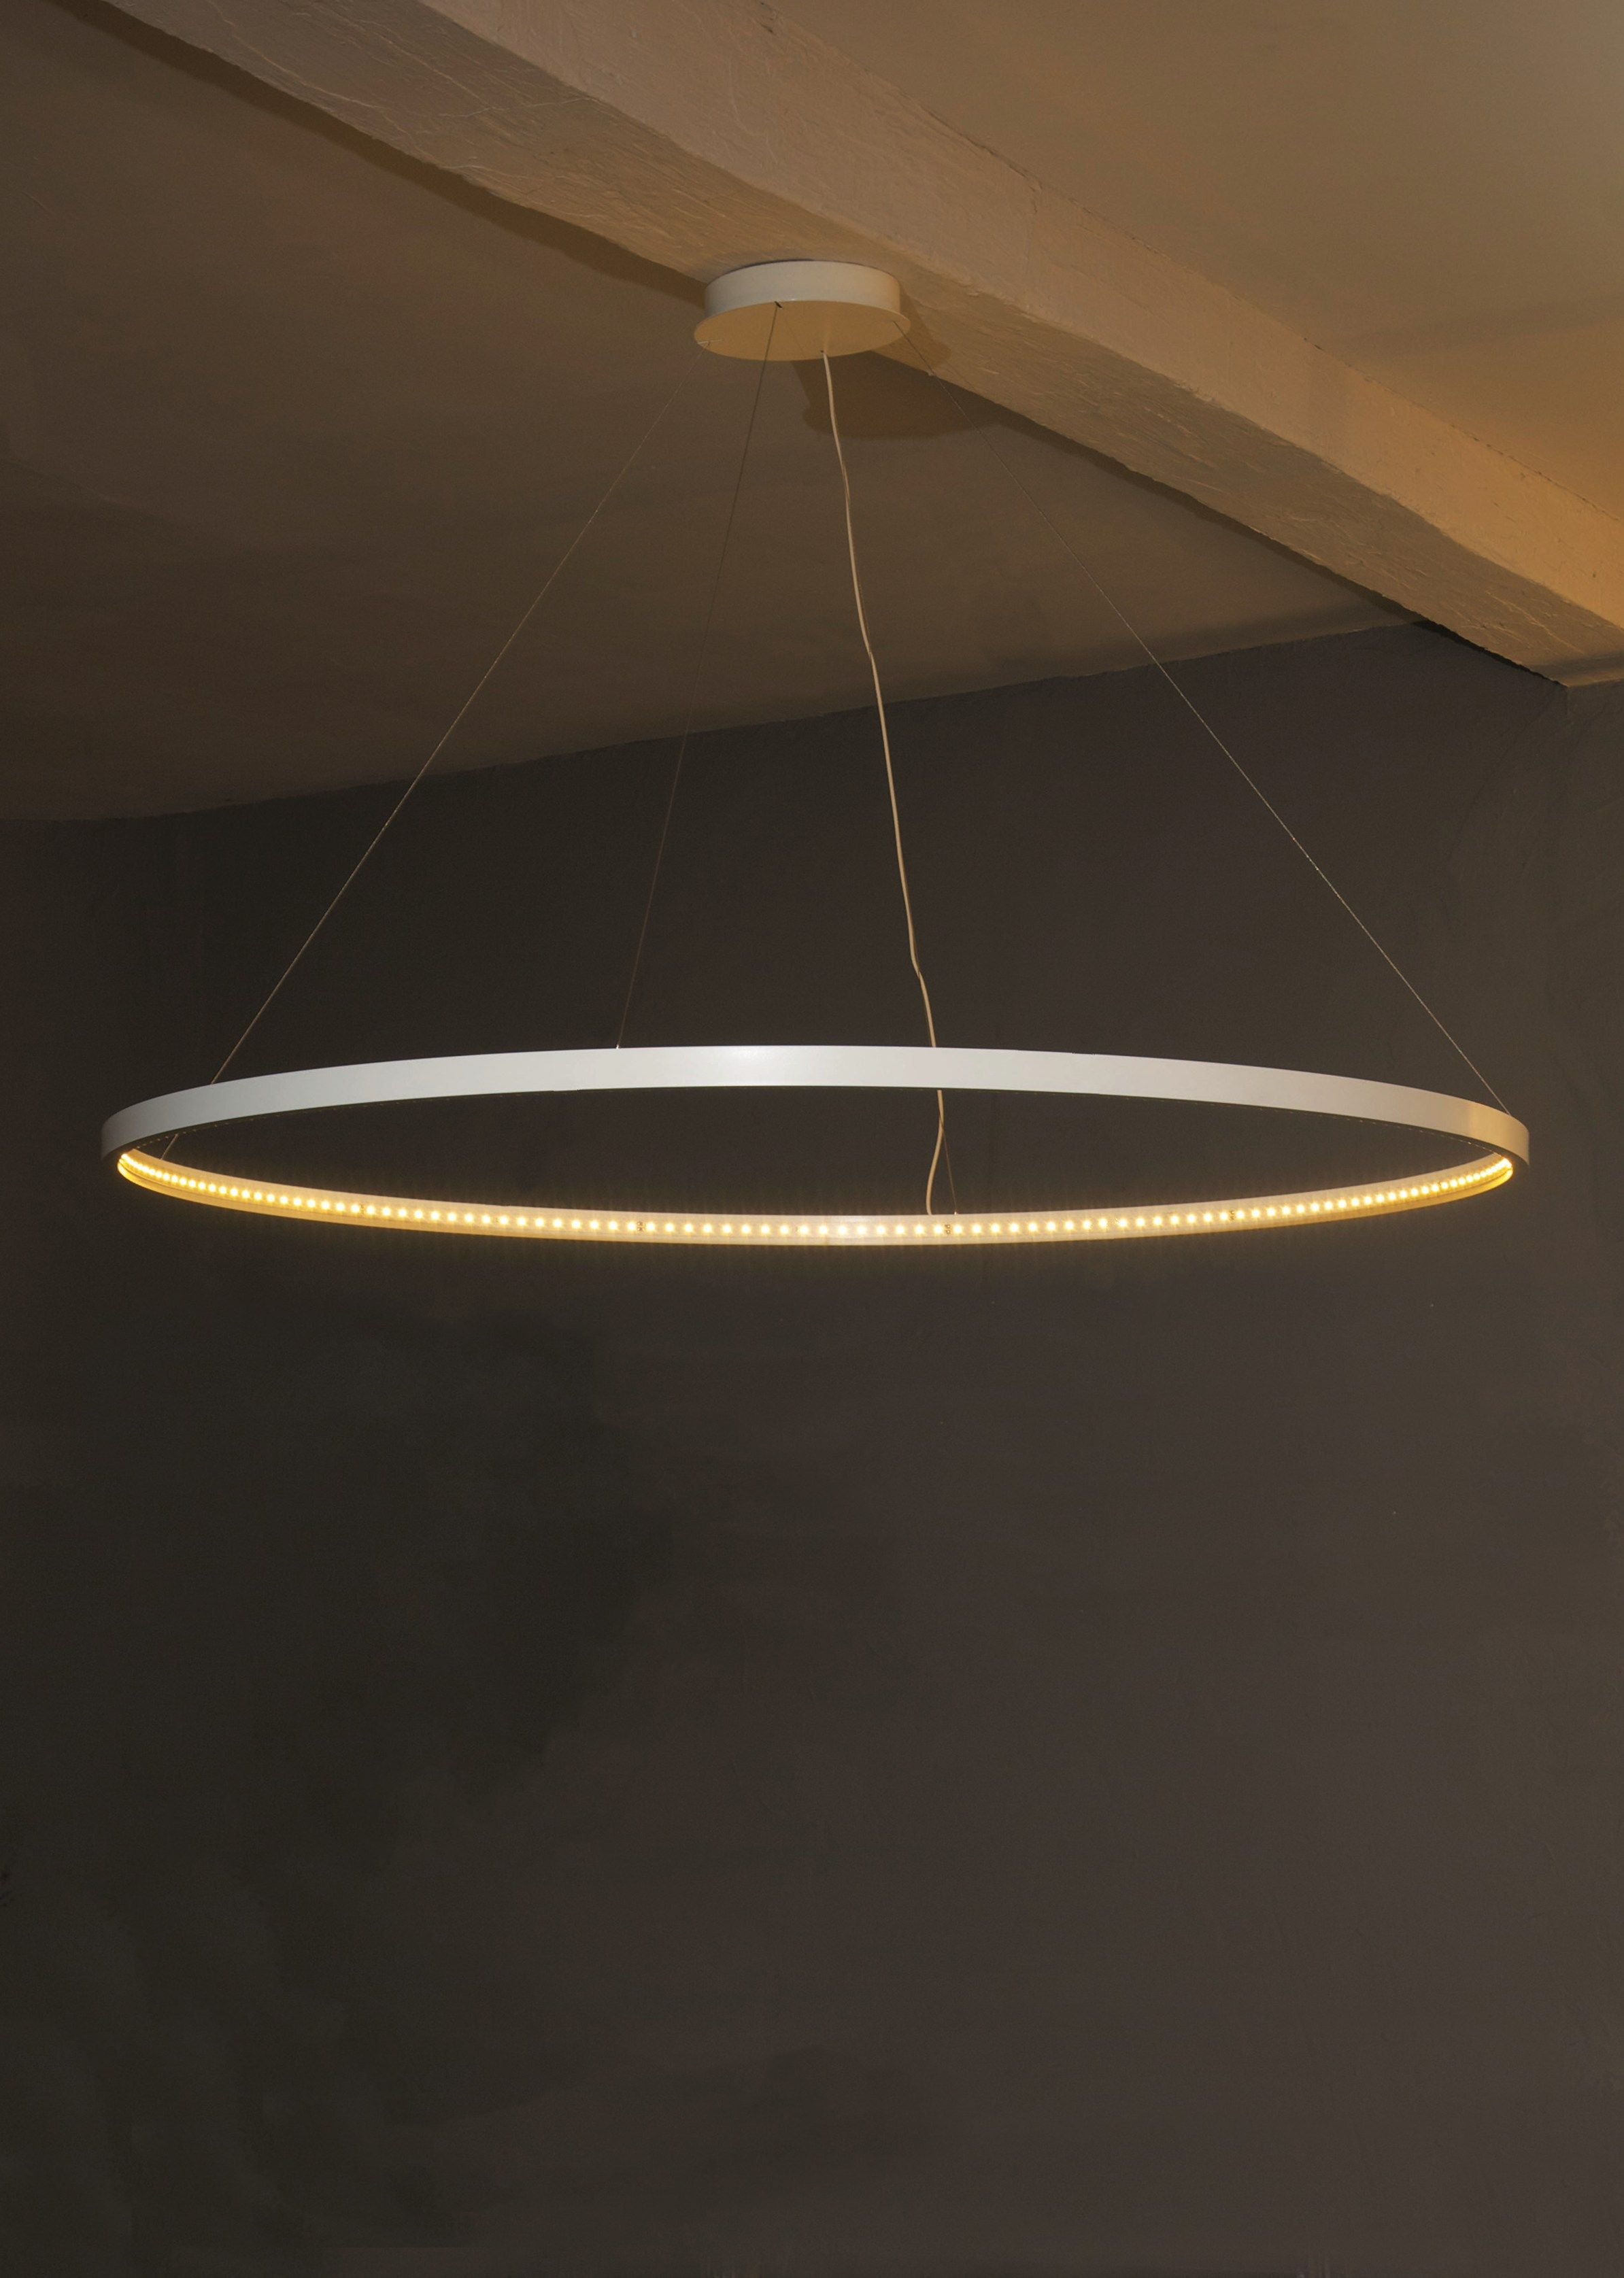 Led direct indirect light pendant lamp omega 120 by le deun led direct indirect light pendant lamp omega 120 by le deun luminaires aloadofball Image collections